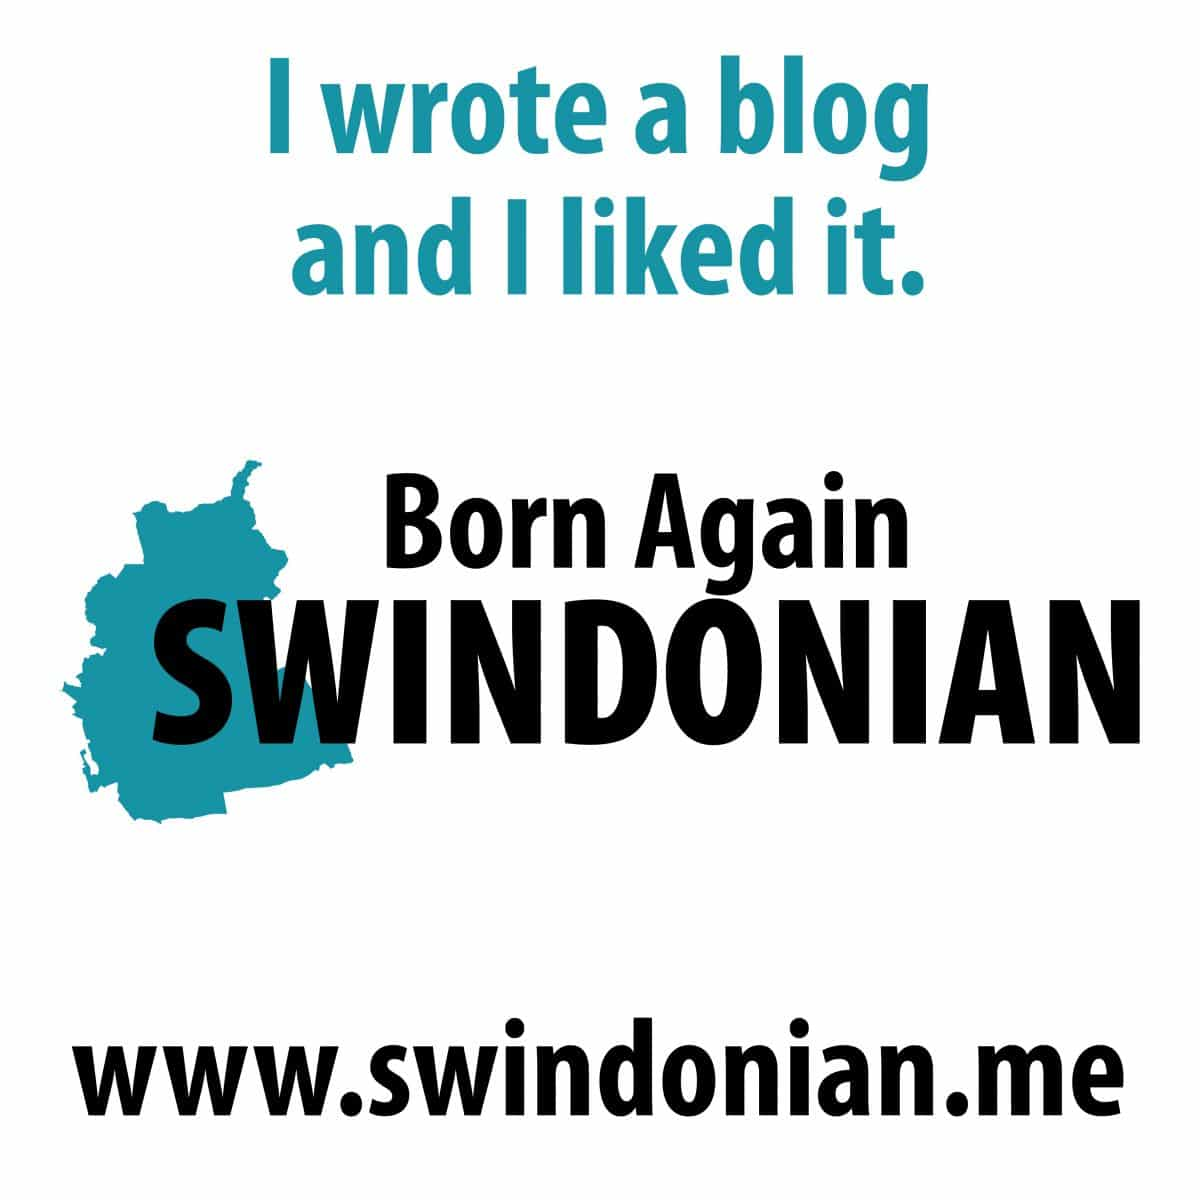 Meeting a Born again Swindonian